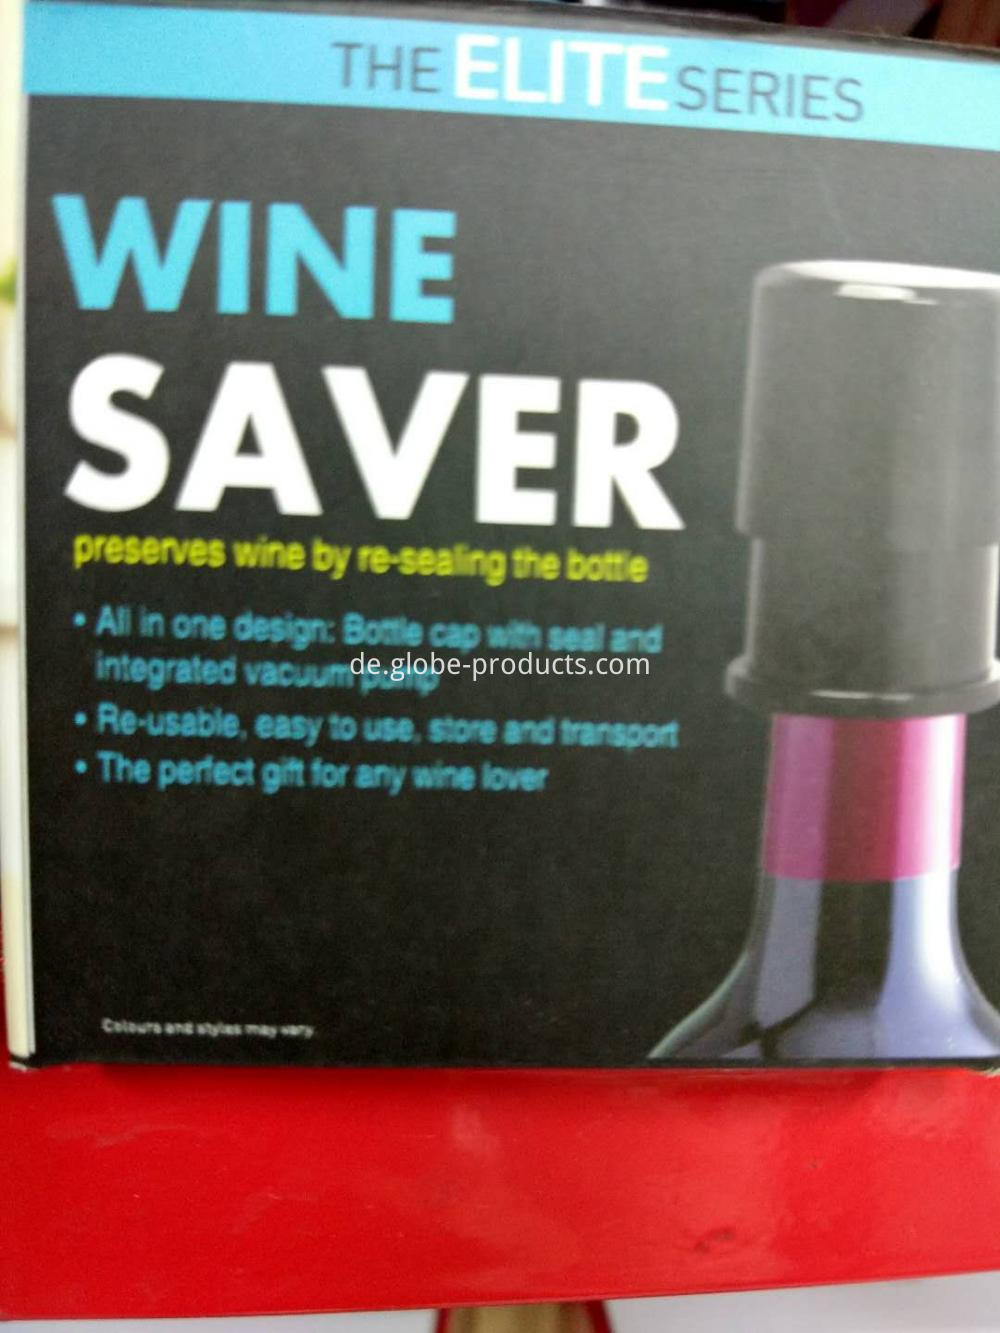 Webwxgetmsgimg 10 Wine Accessories,Kitchen Wine Accessories,Wine Accessories In Barrel,Kitchen Wine Vacuum Stopper